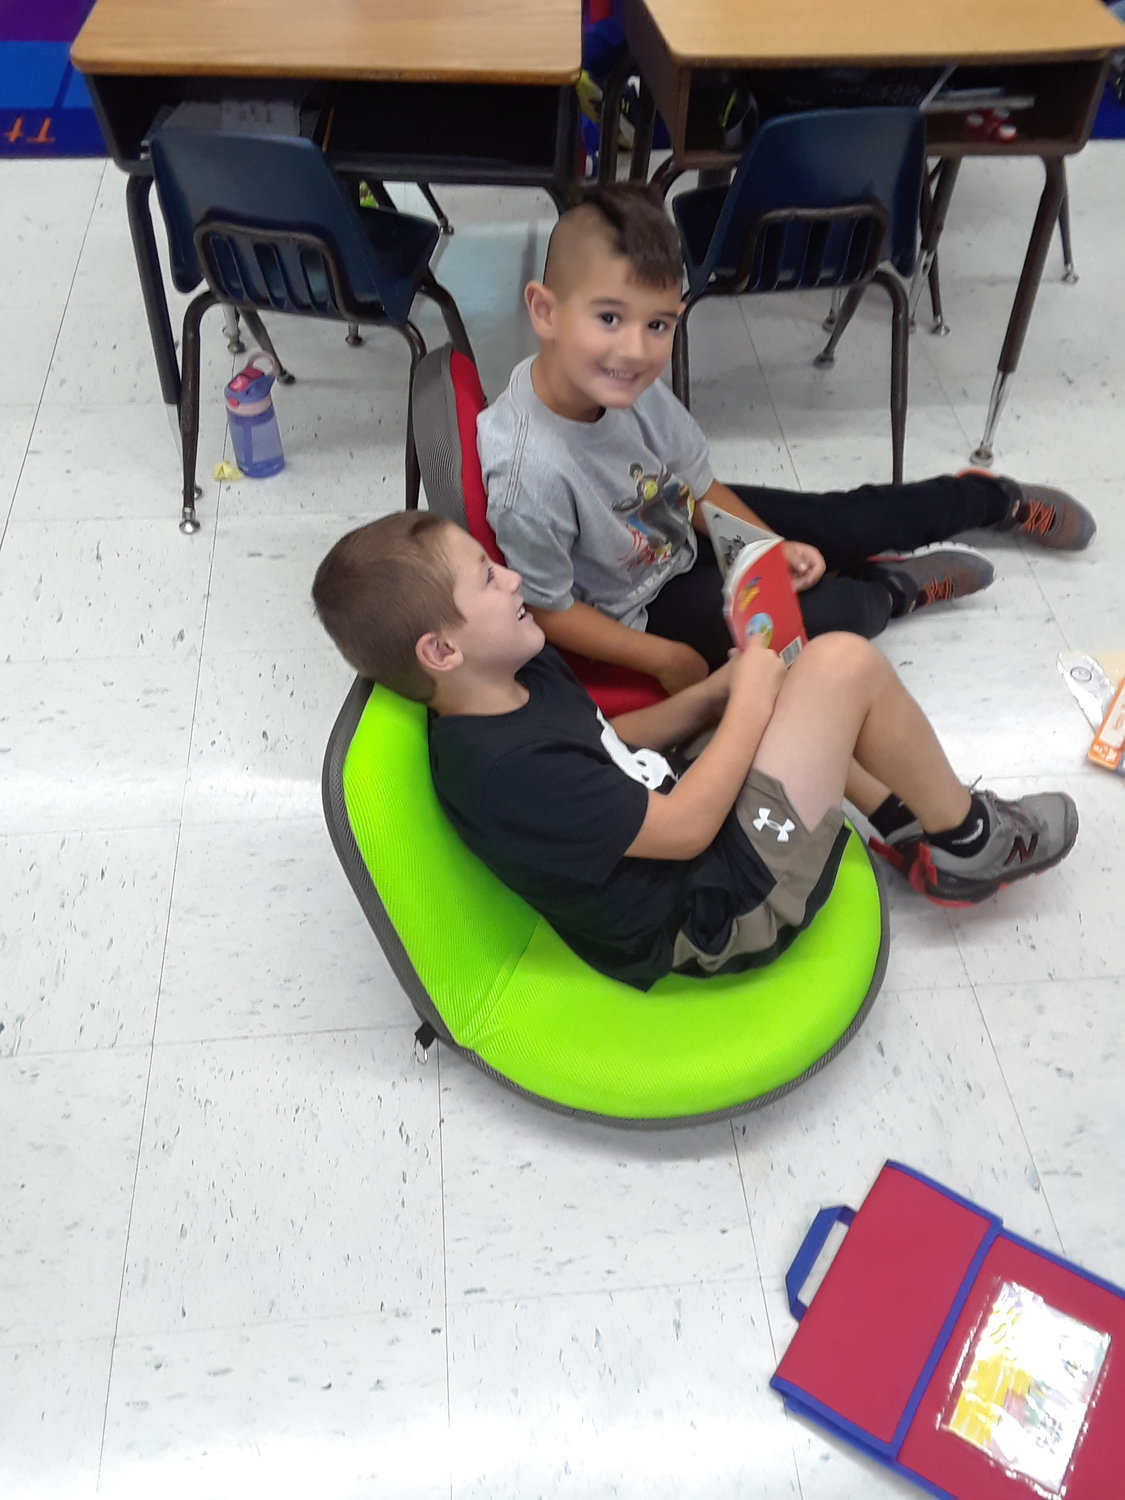 Seaford Manor students Ryan Donely, left, and Thomas Cottone took a break from reading together at Seaford Harbor School on Sept. 19.